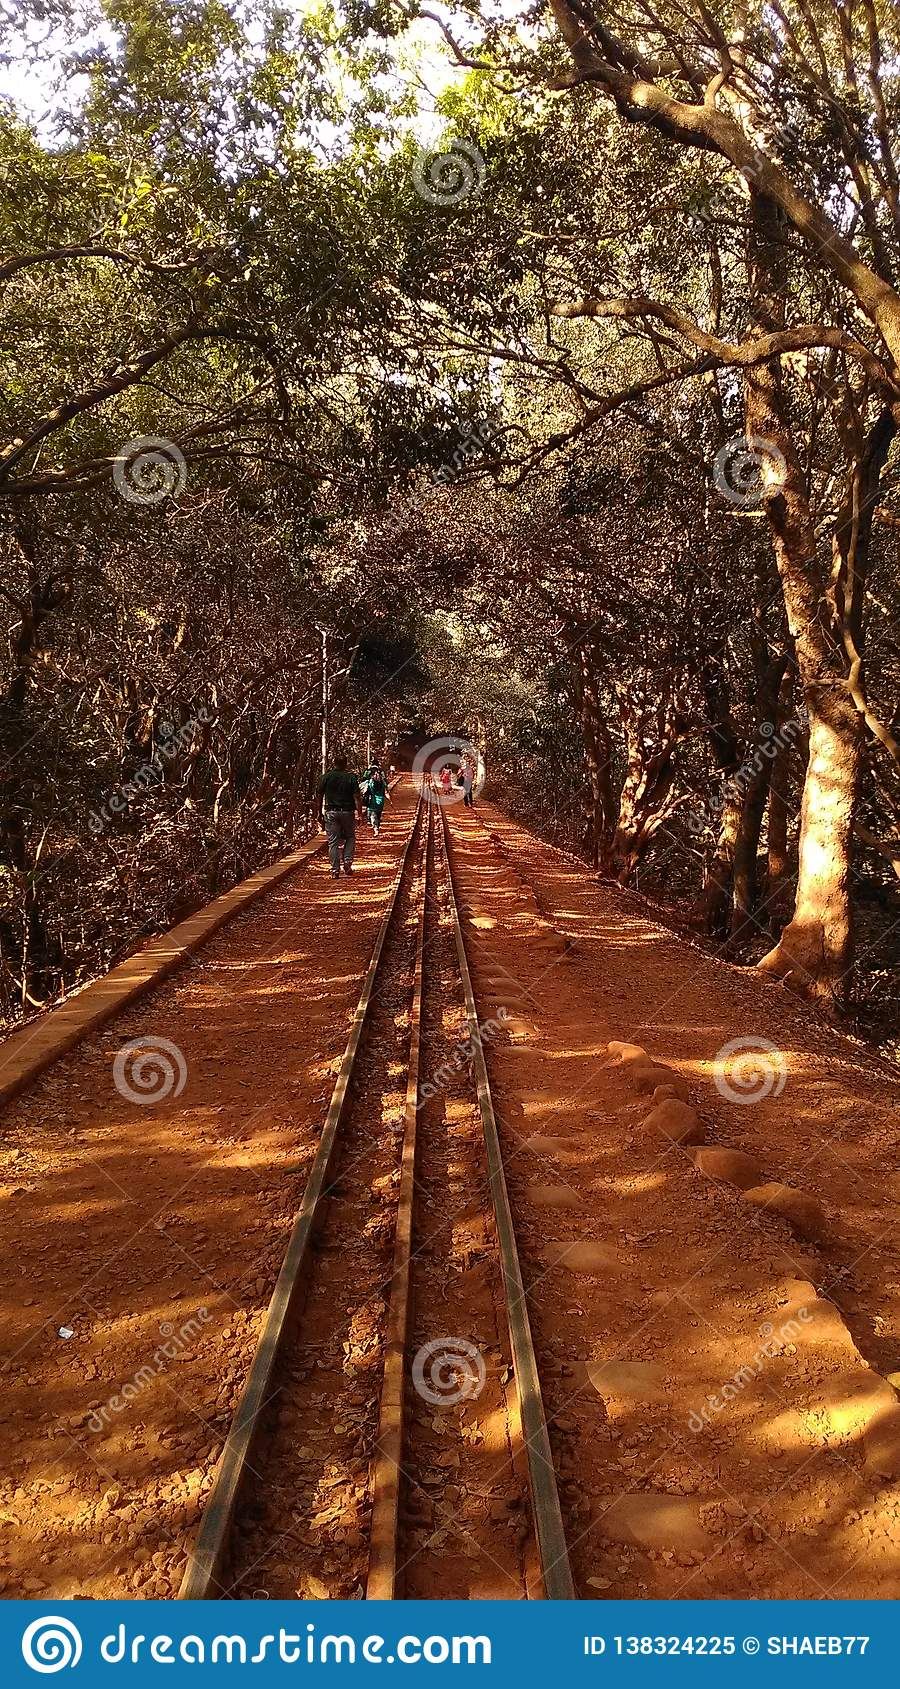 Railway track inside the forest